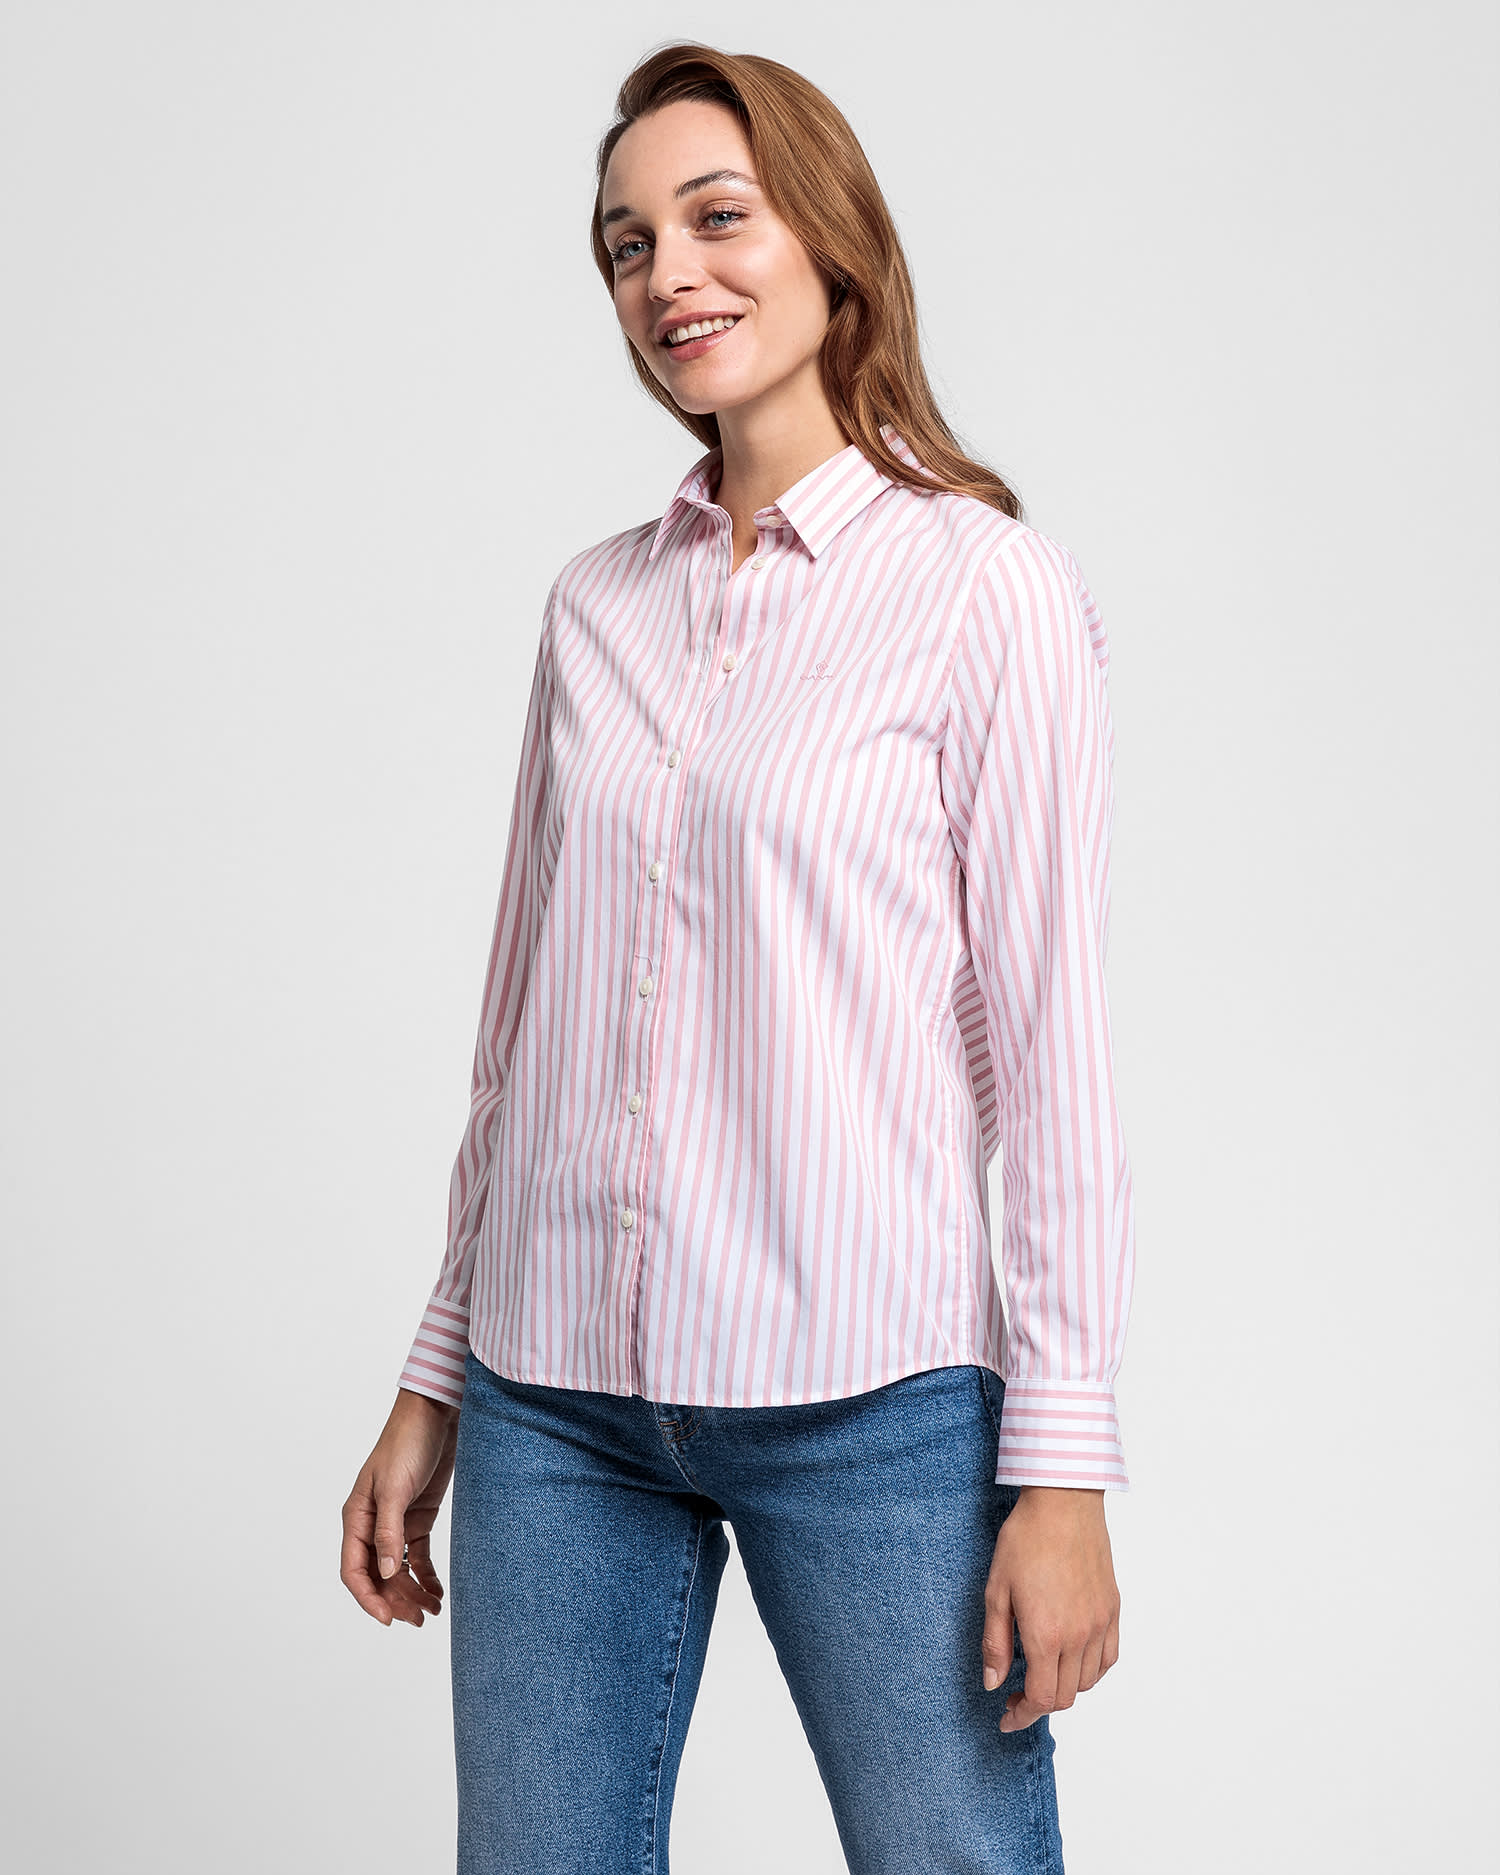 Womens Shirt Relaxed Fit